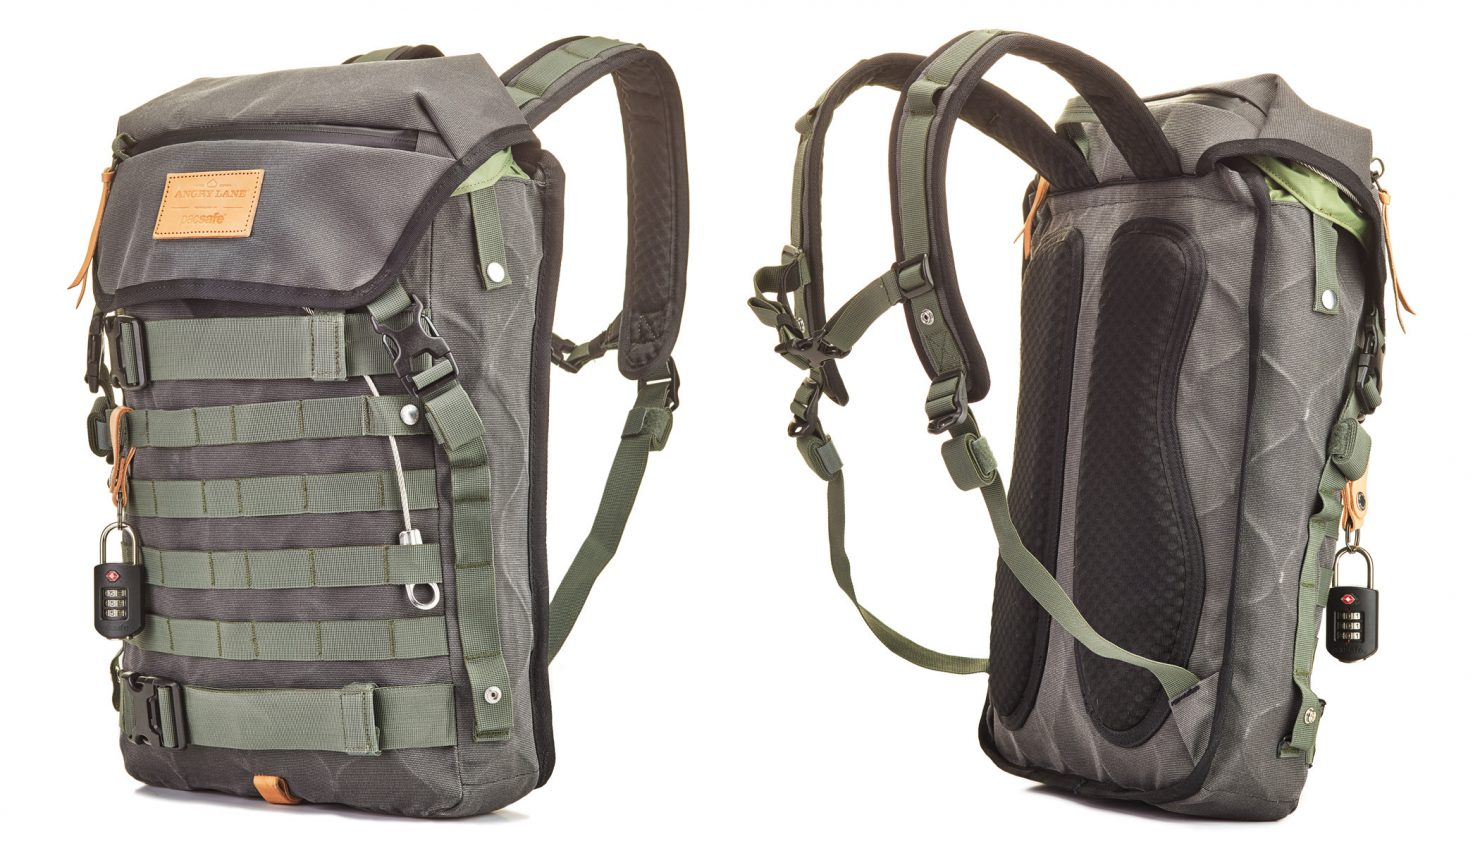 The Angry Lane Rider Daypack 4 1480x846 - The Angry Lane Rider Daypack